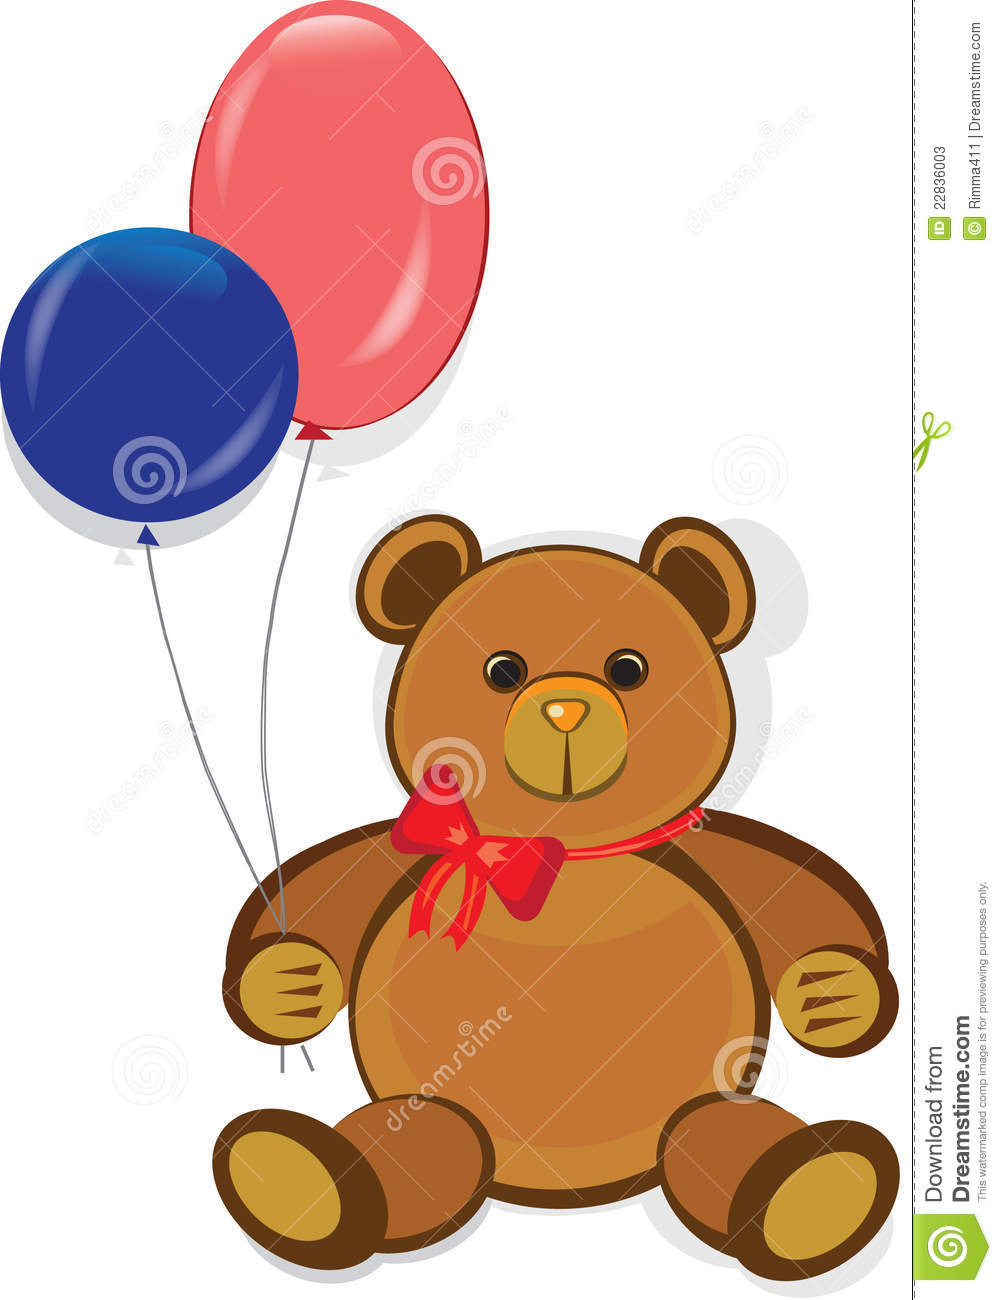 Funny Teddy Bear,happy Birthday Card Stock Photos - Image: 22836003